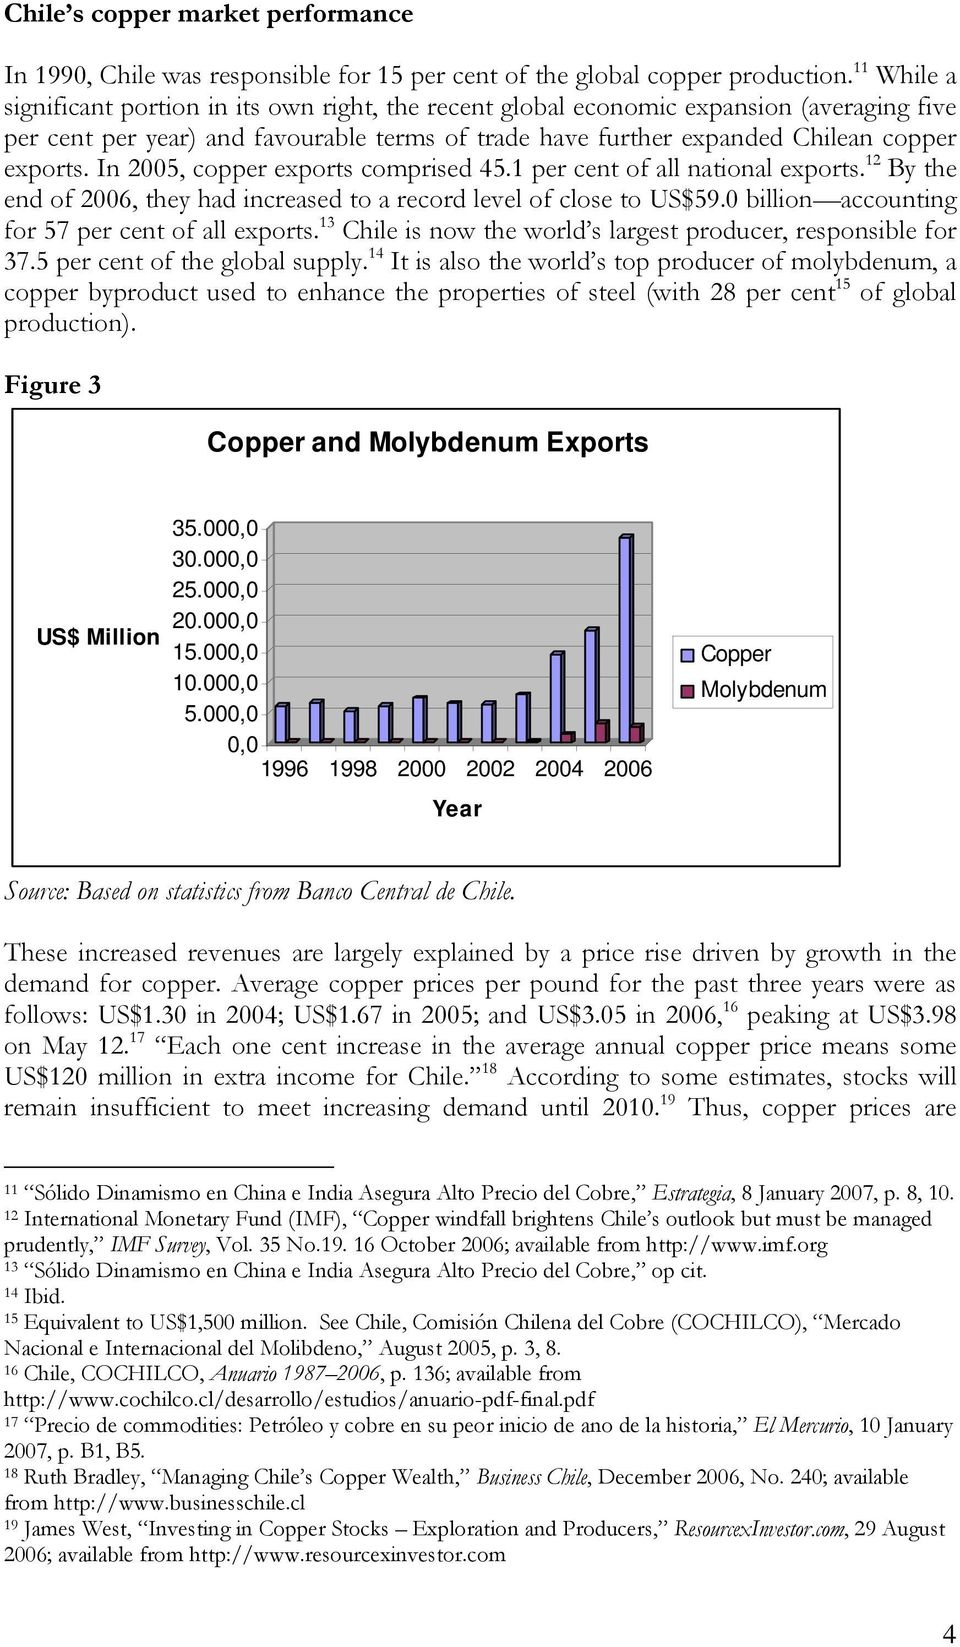 In 2005, copper exports comprised 45.1 per cent of all national exports. 12 By the end of 2006, they had increased to a record level of close to US$59.